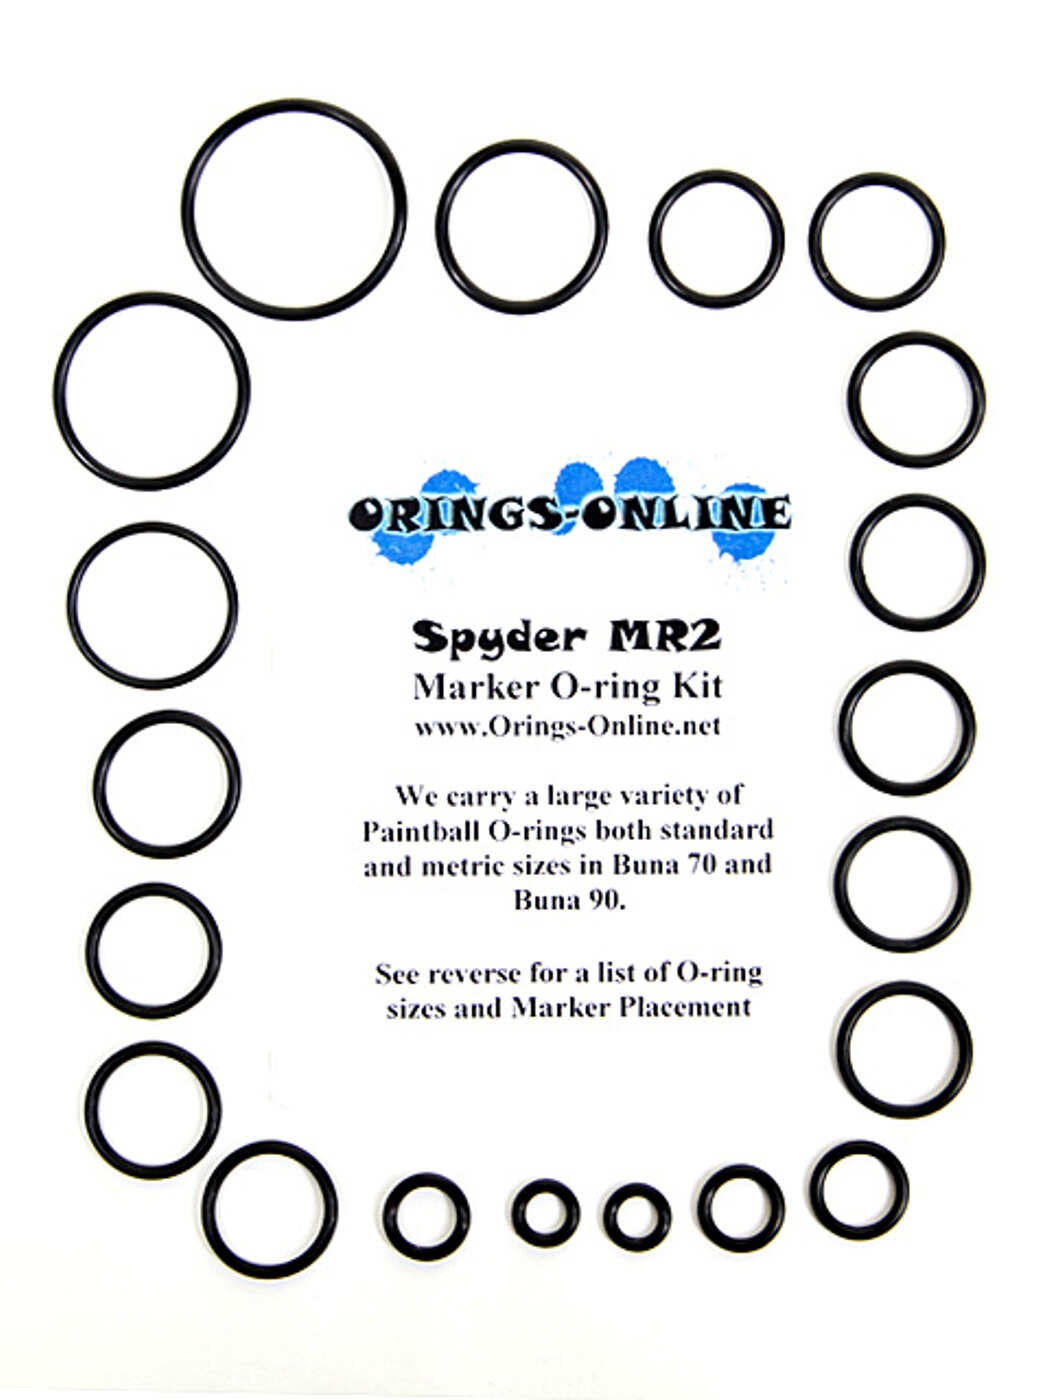 Spyder MR2 Marker O-ring Kit